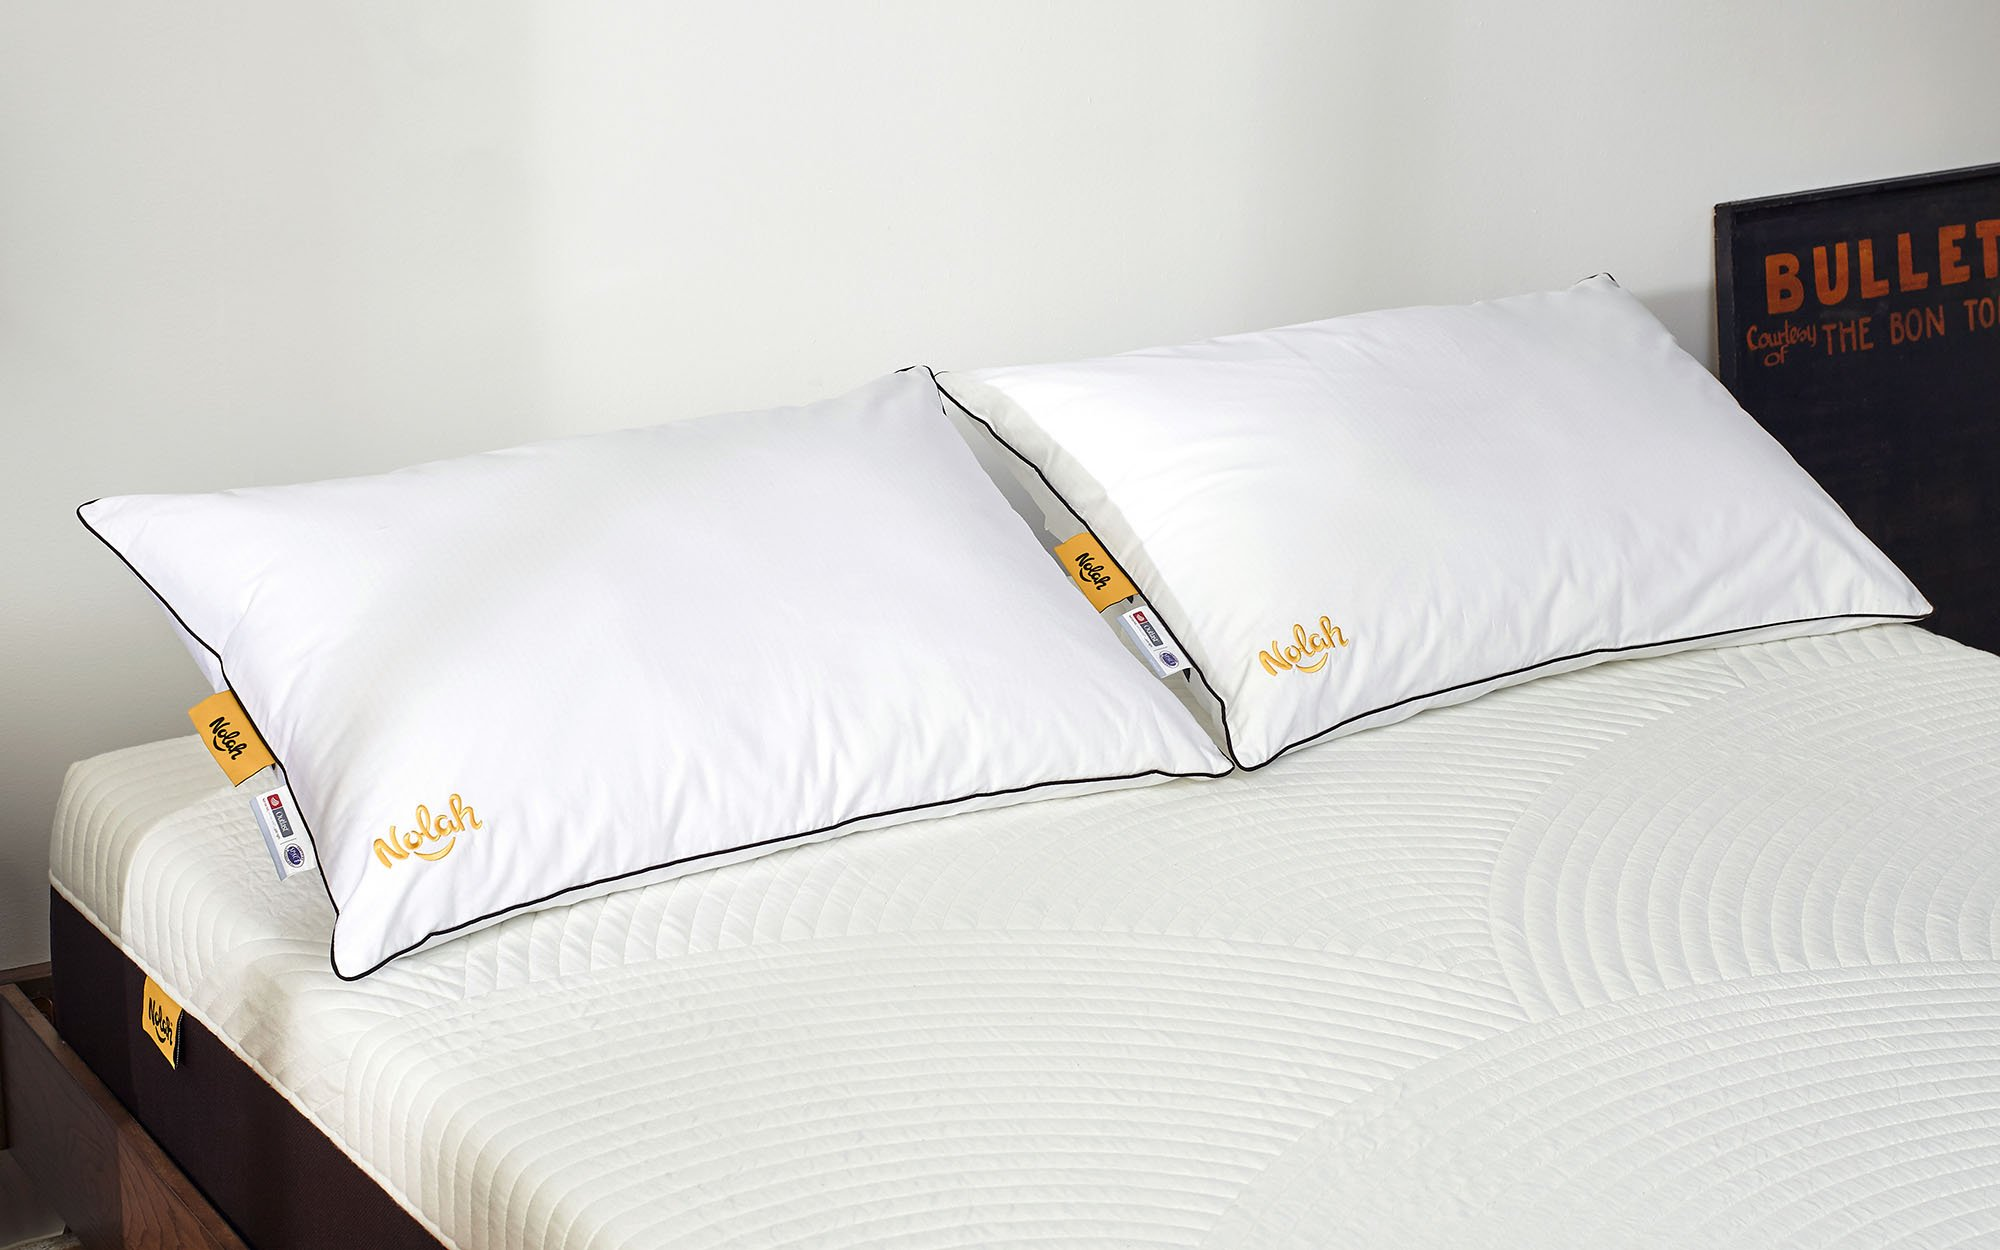 is the airfiber pillow comfortable?